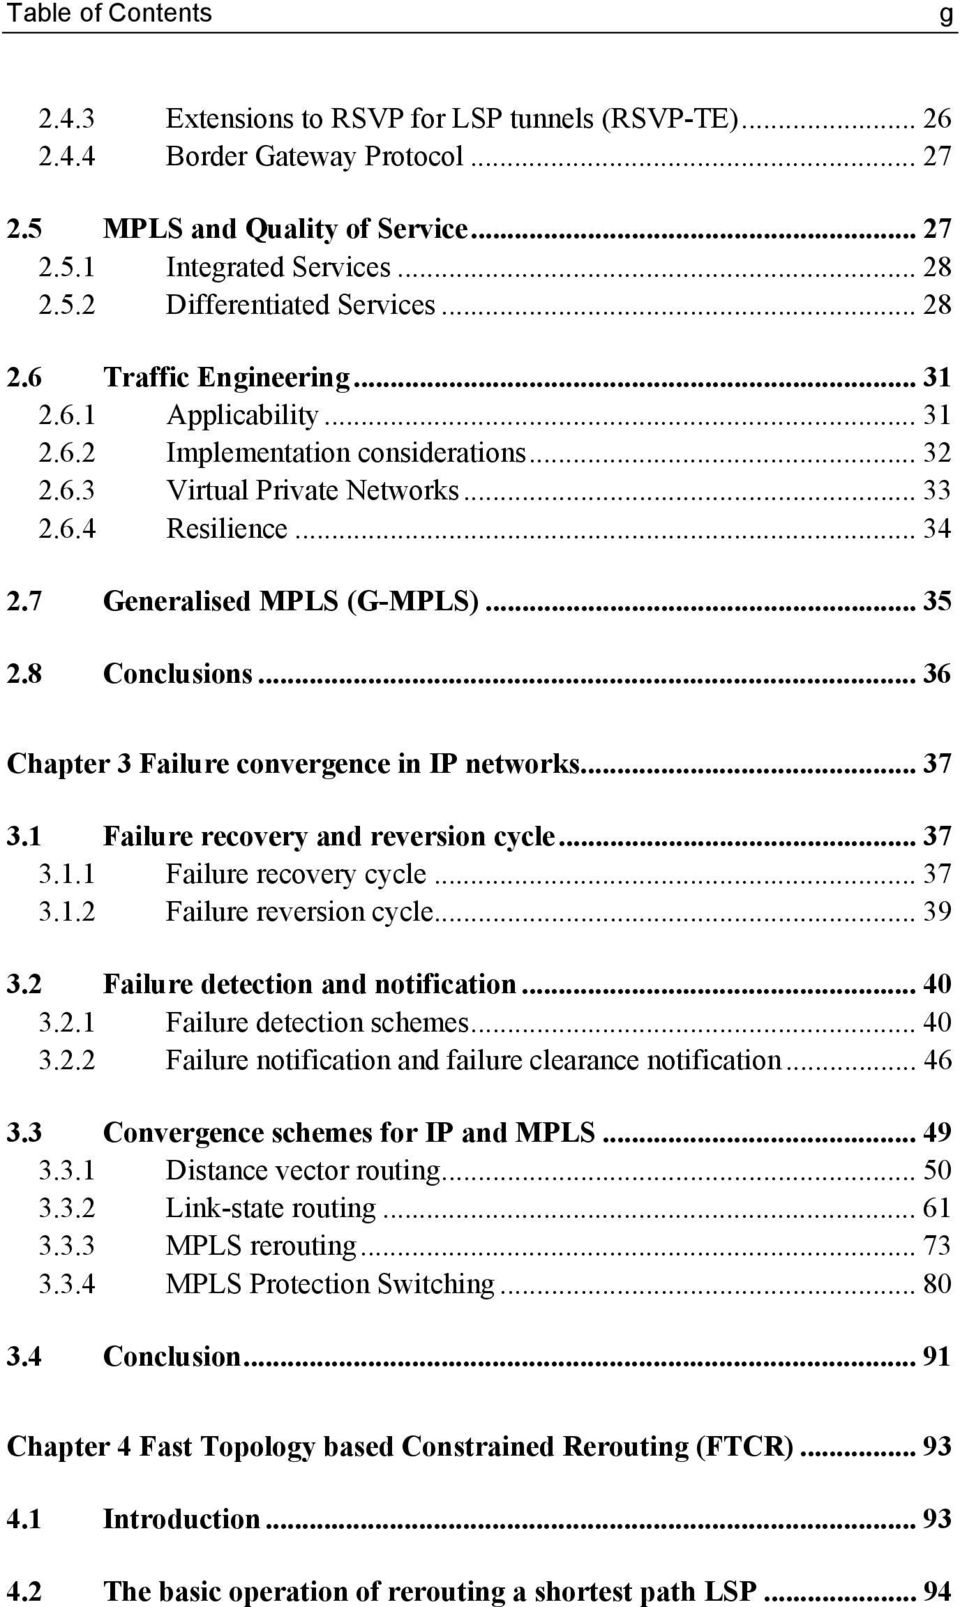 8 Conclusions... 36 Chapter 3 Failure convergence in IP networks... 37 3.1 Failure recovery and reversion cycle... 37 3.1.1 Failure recovery cycle... 37 3.1.2 Failure reversion cycle... 39 3.